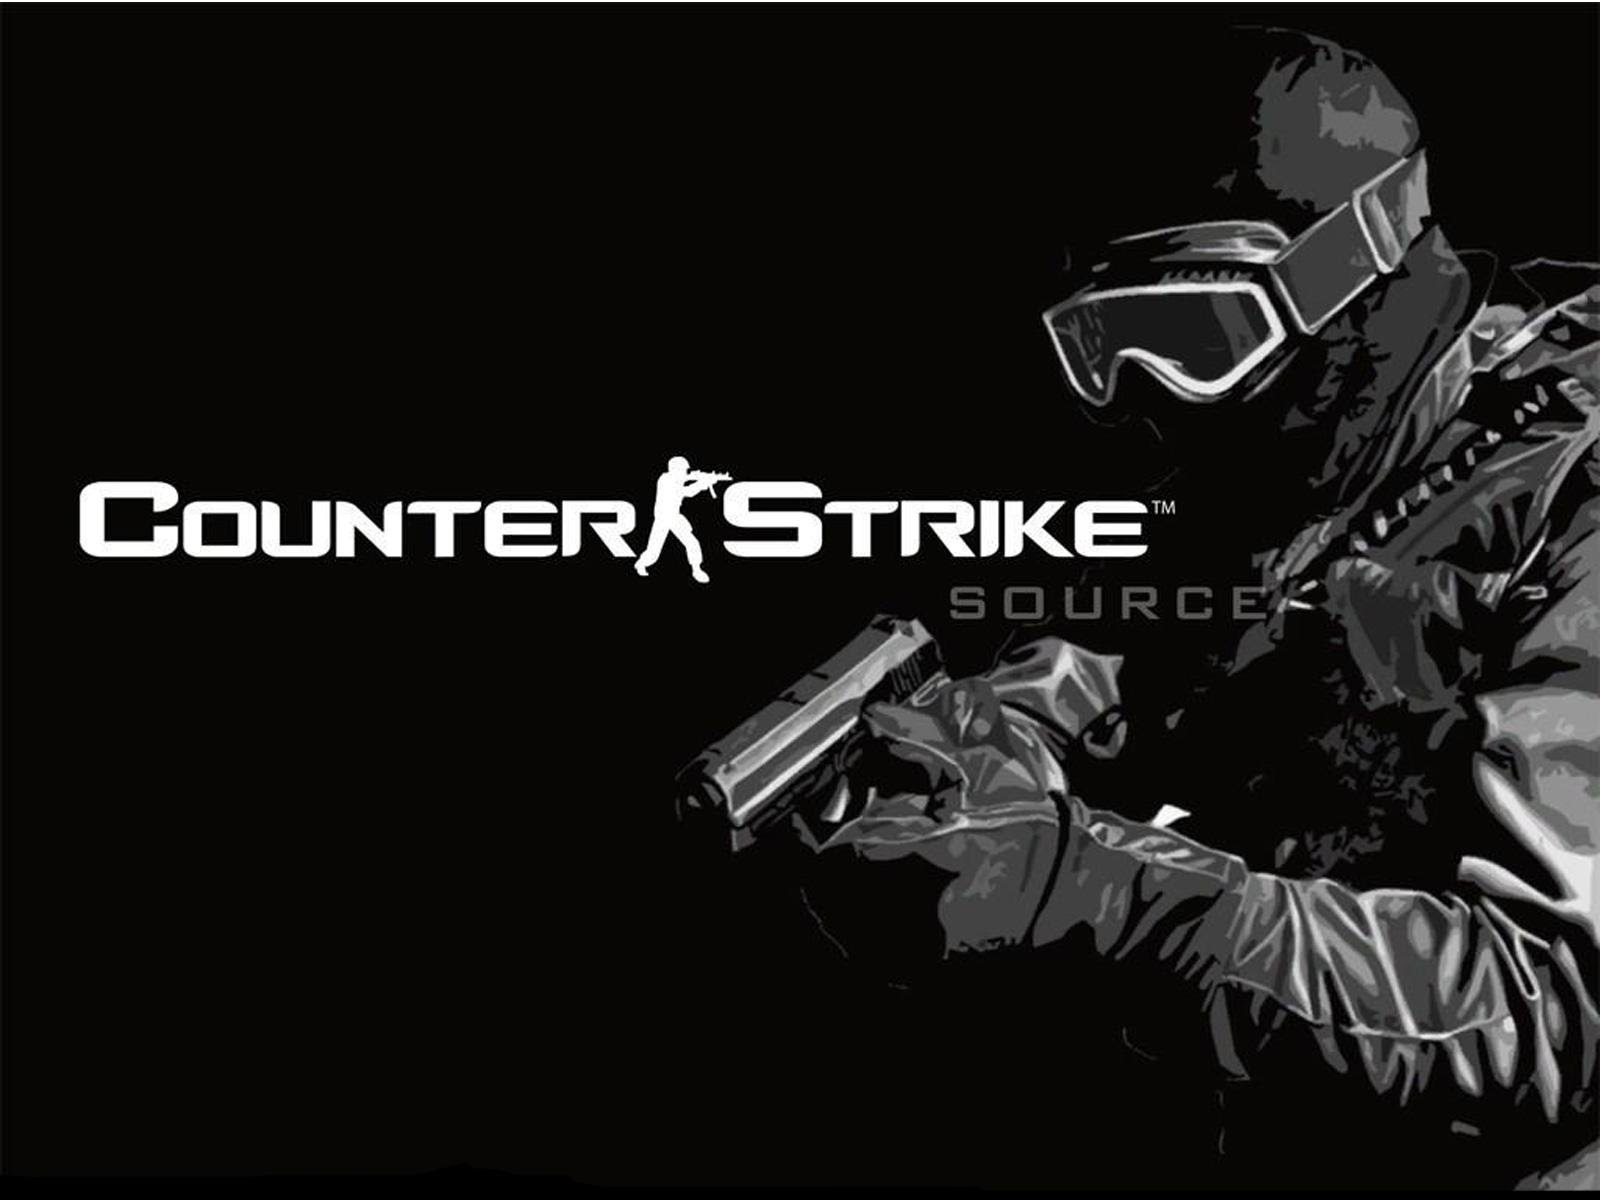 Counter strike source hd wallpapers - Counter strike wallpaper hd ...